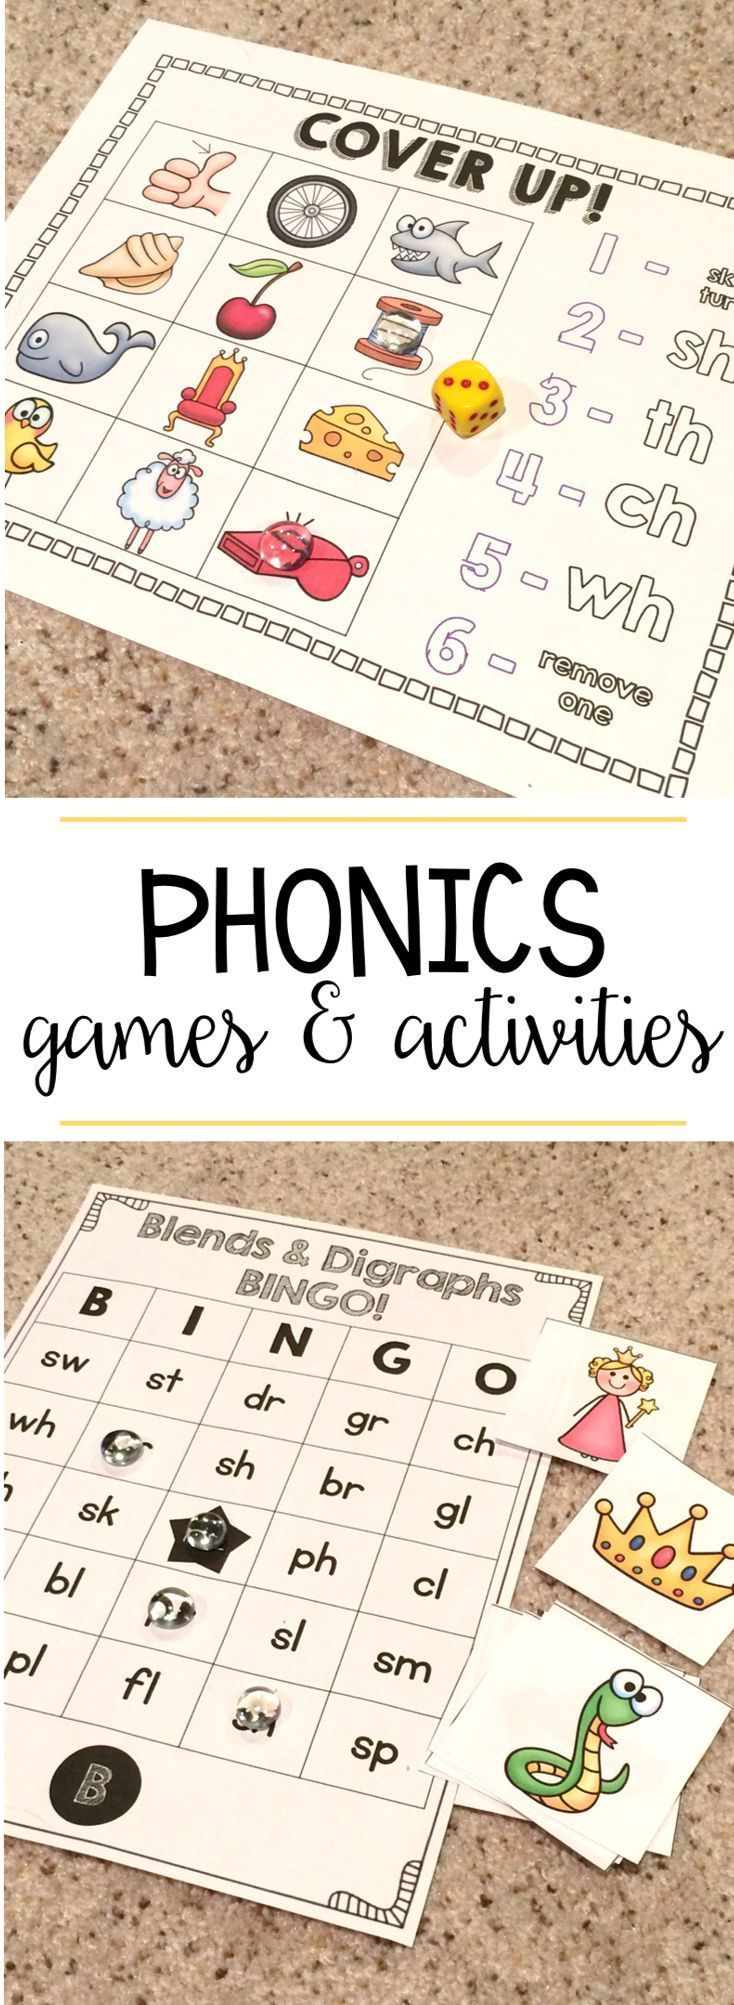 Game with shapes of different colors crossword - Phonics Games Digraphs Blends Short Long Vowels